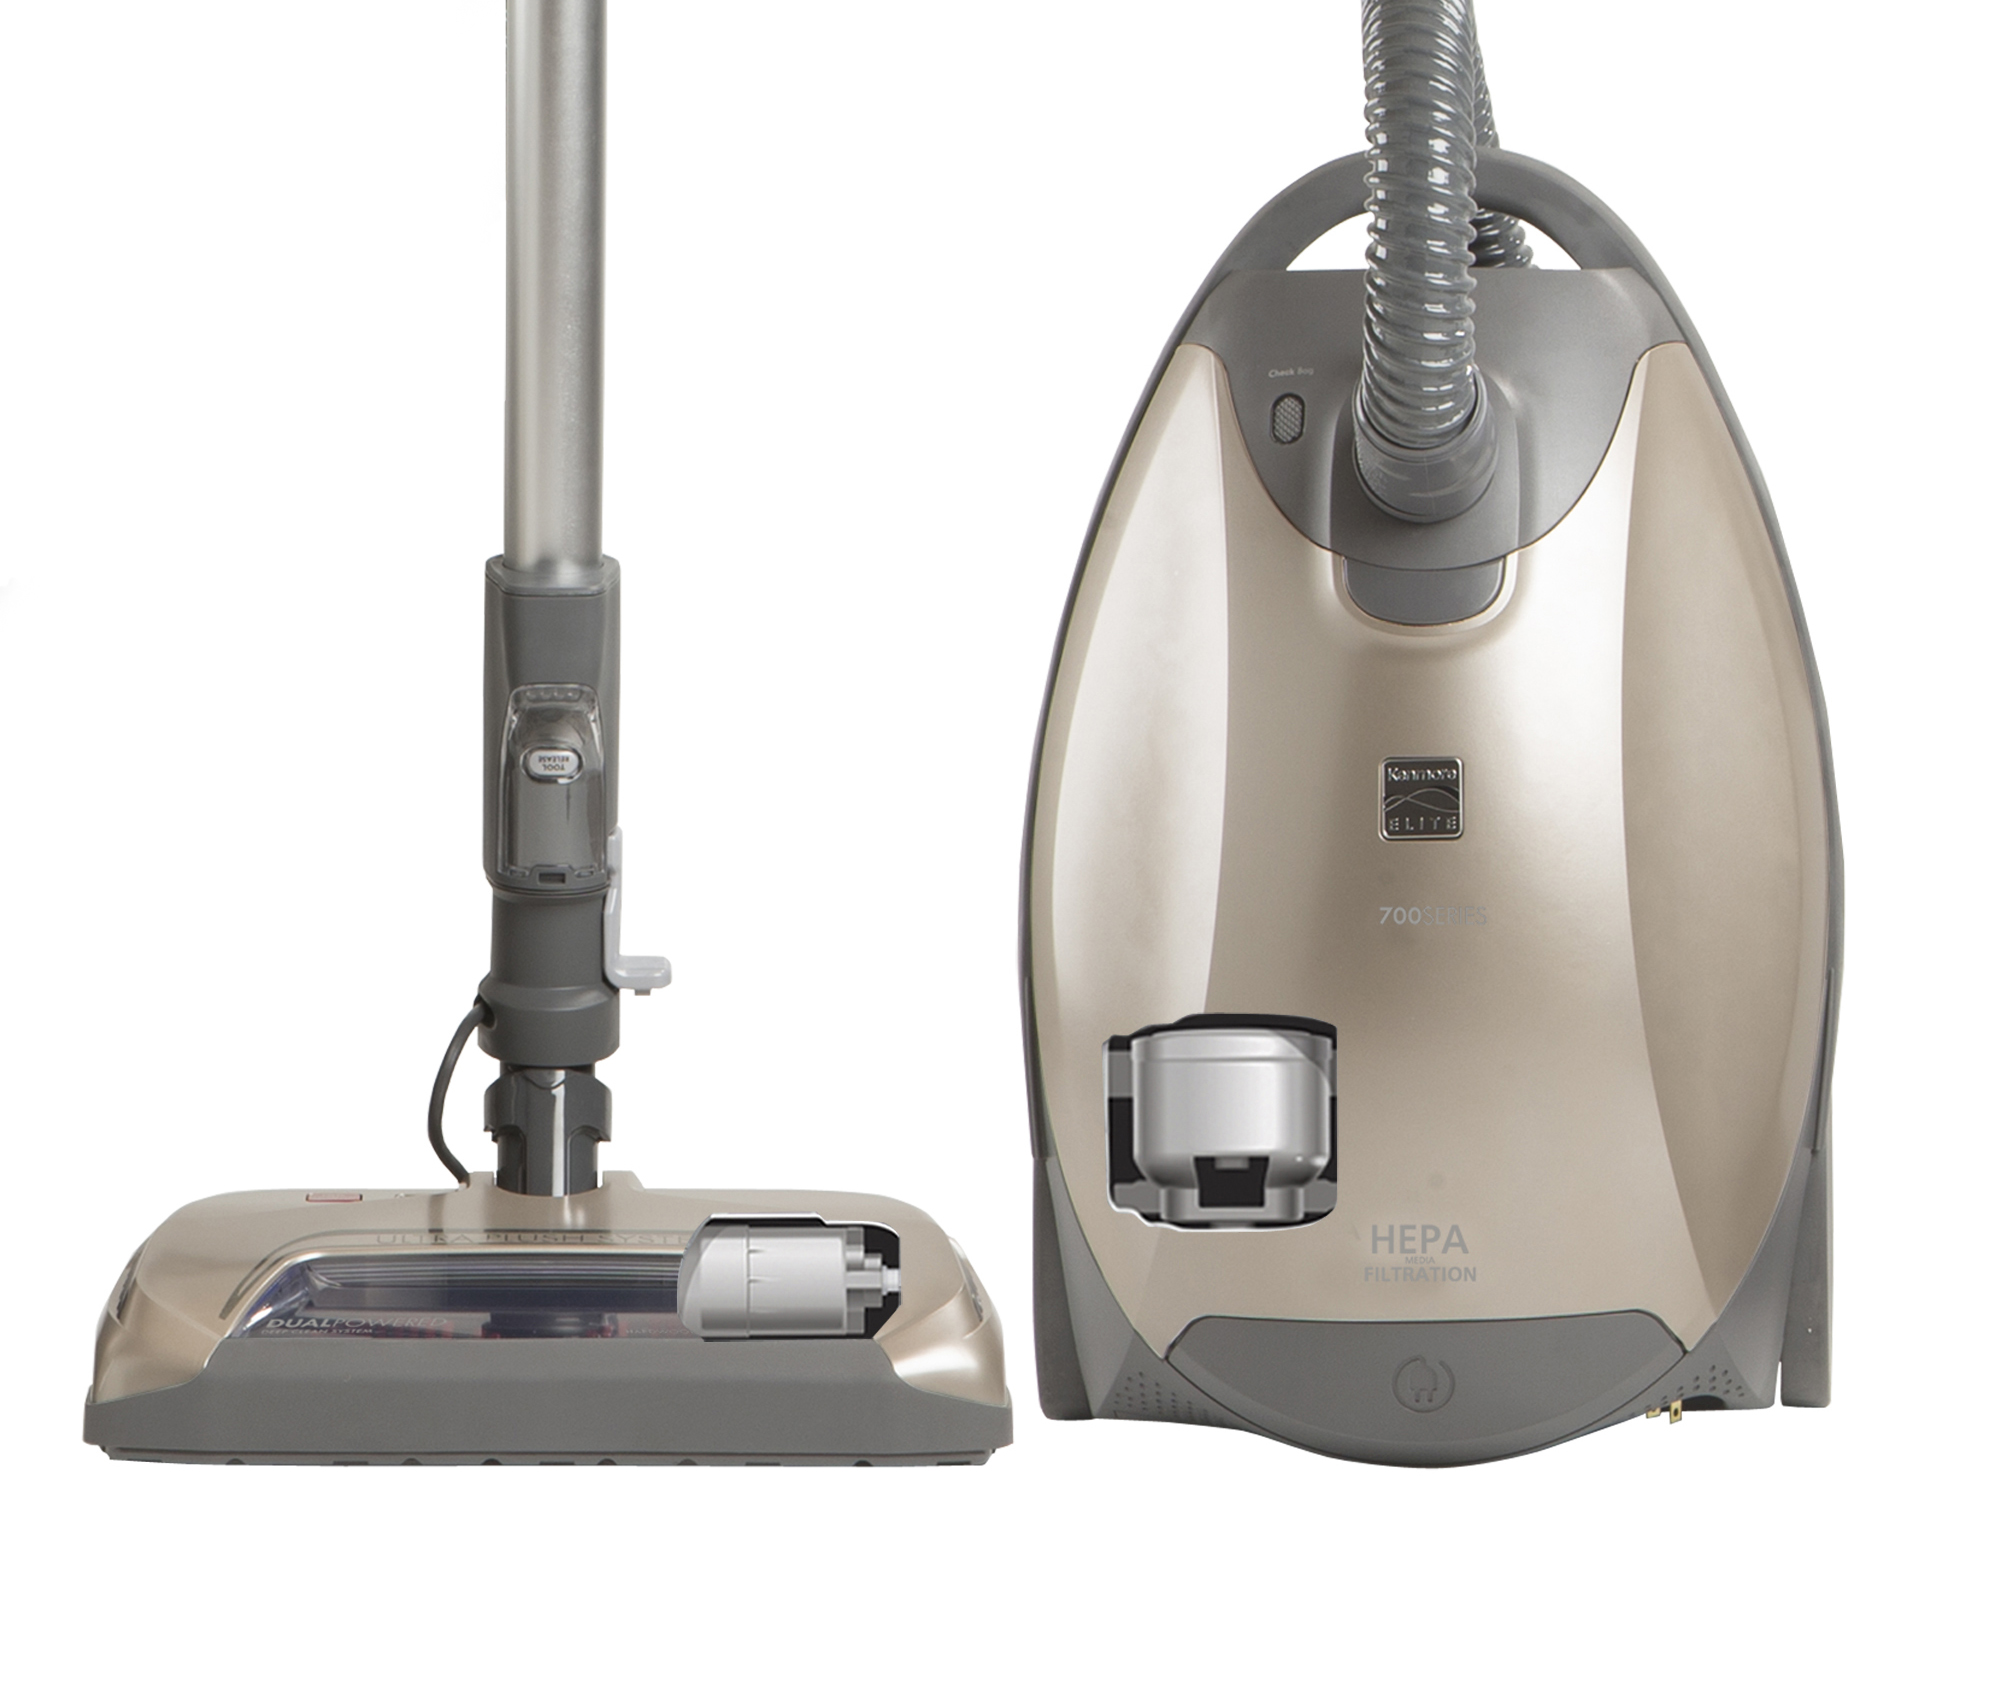 Regaling Kenmore Elite Image Product Shot A New Vacuum On Sears Cleaner Wiring Diagram Fullsize Of Cleaners